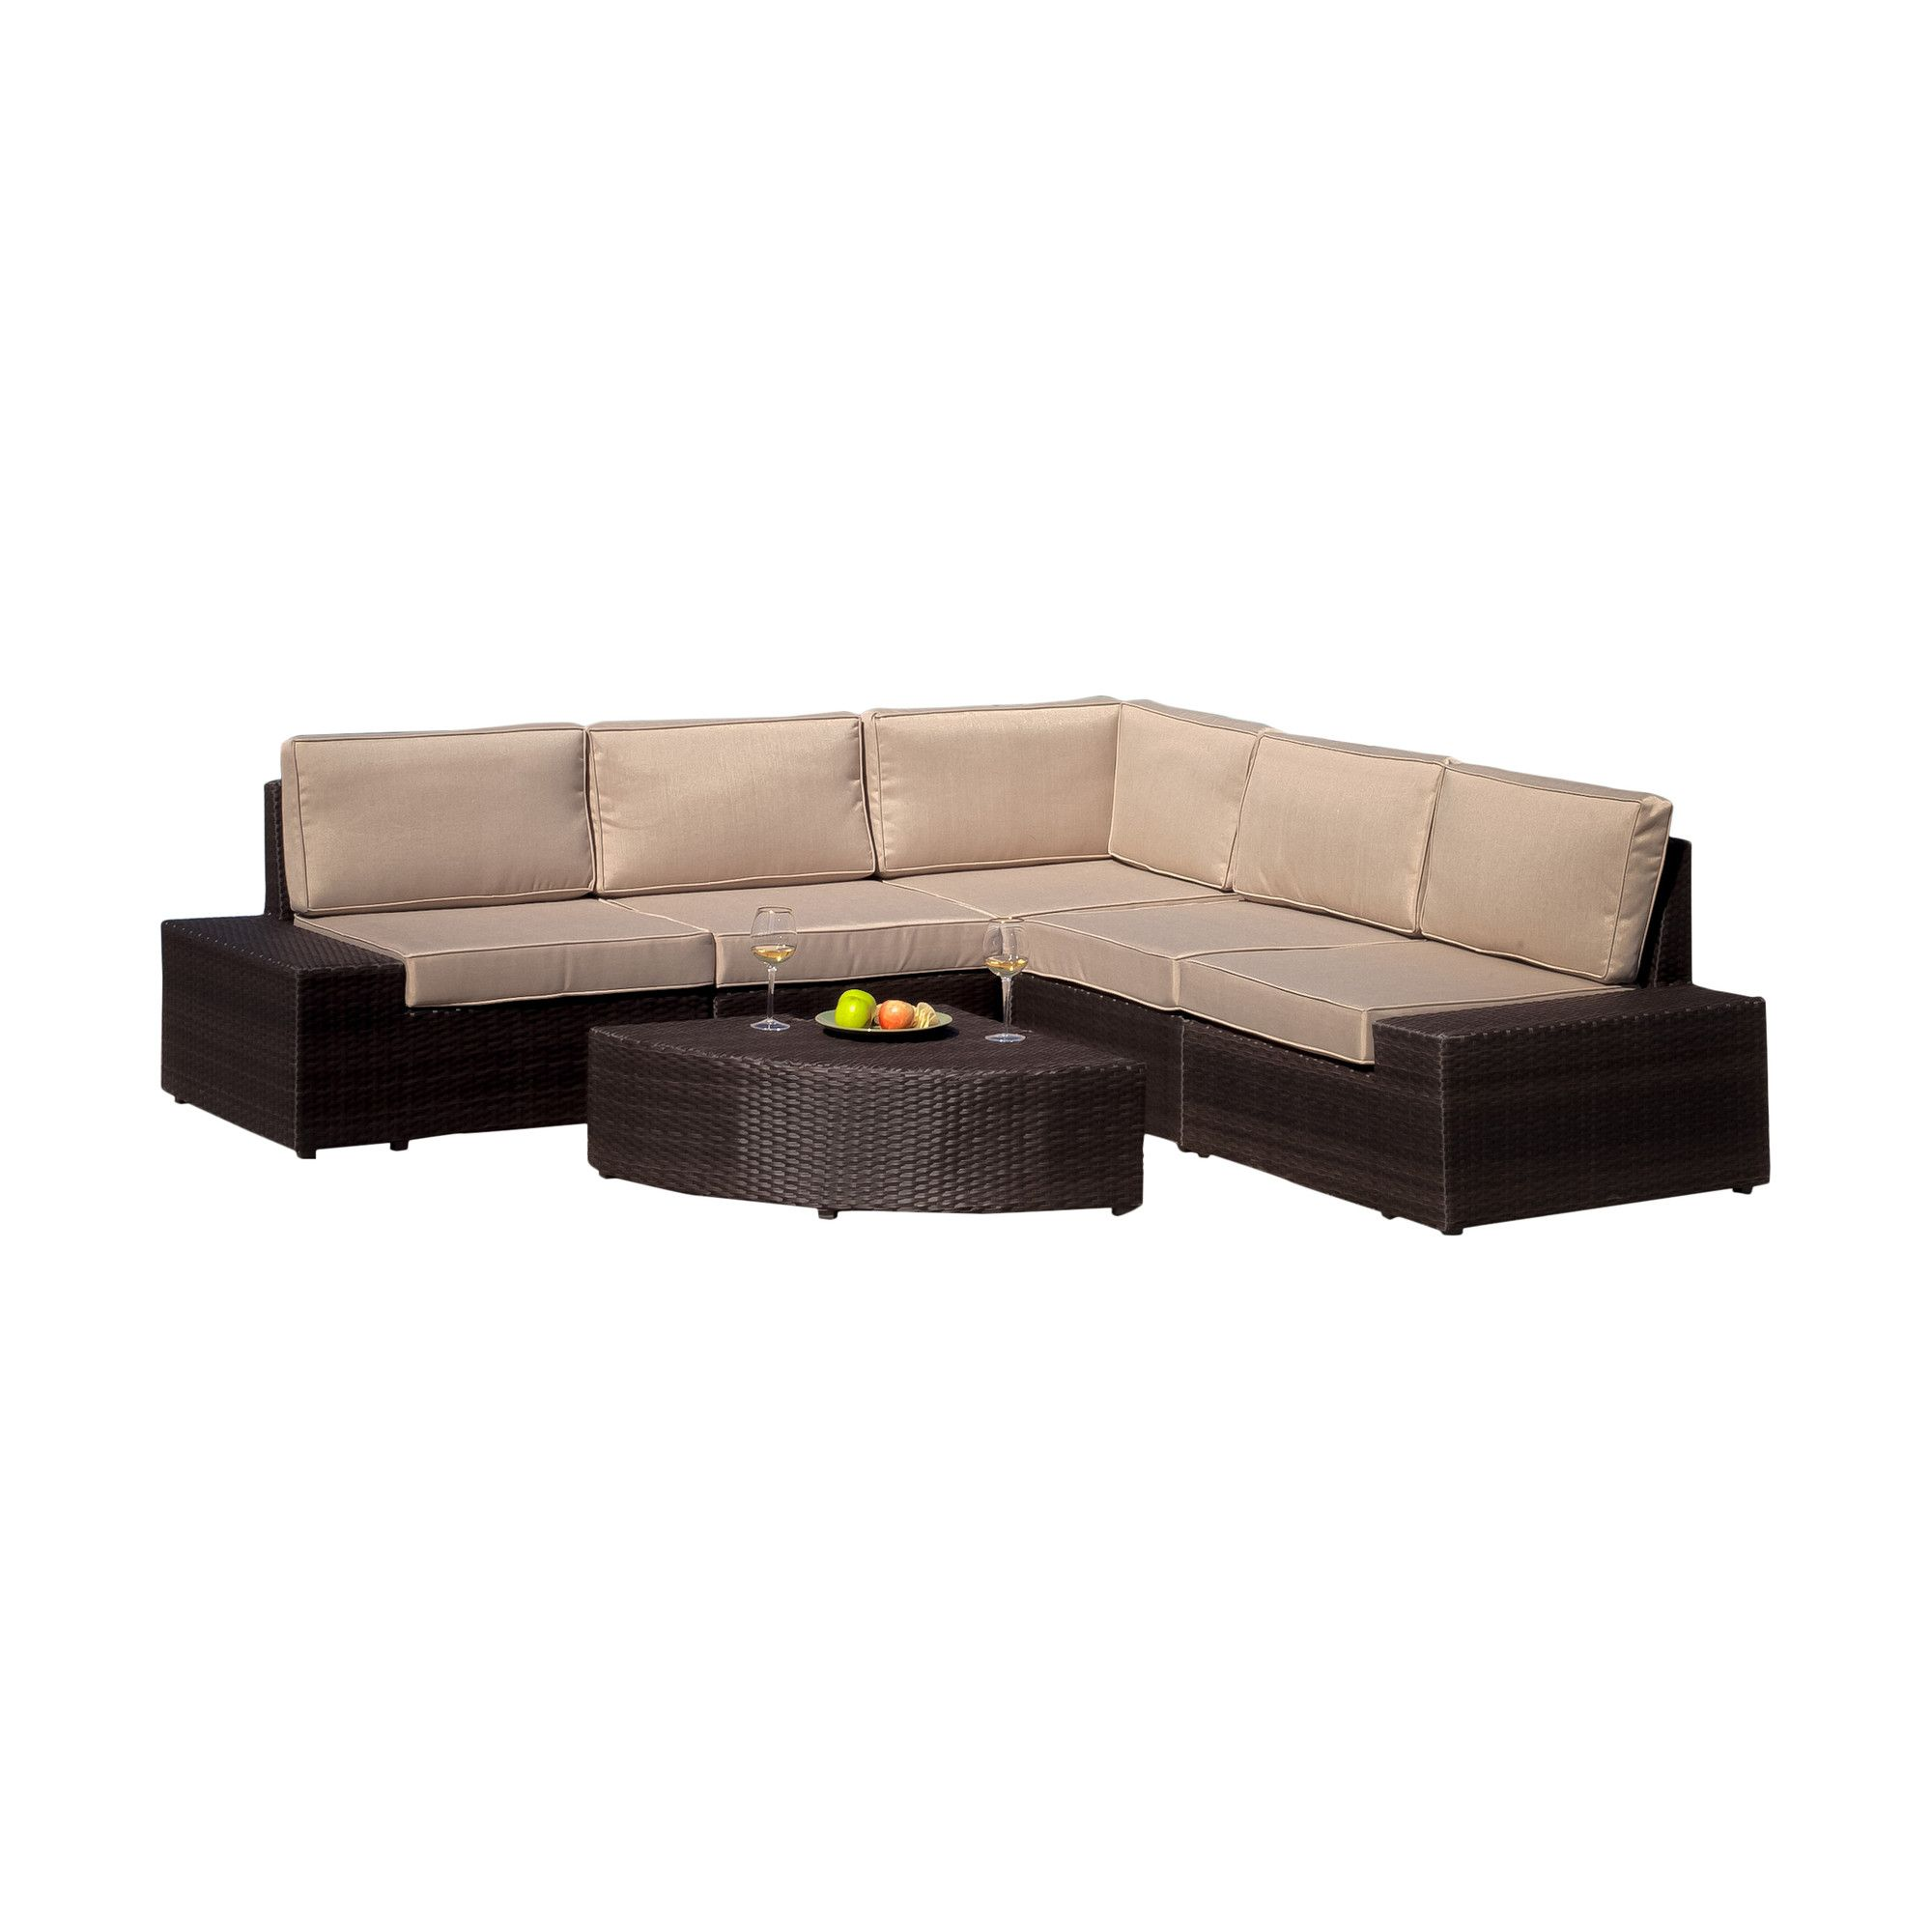 Home Loft Concept Santa Cruz 6 Piece Seating Group With